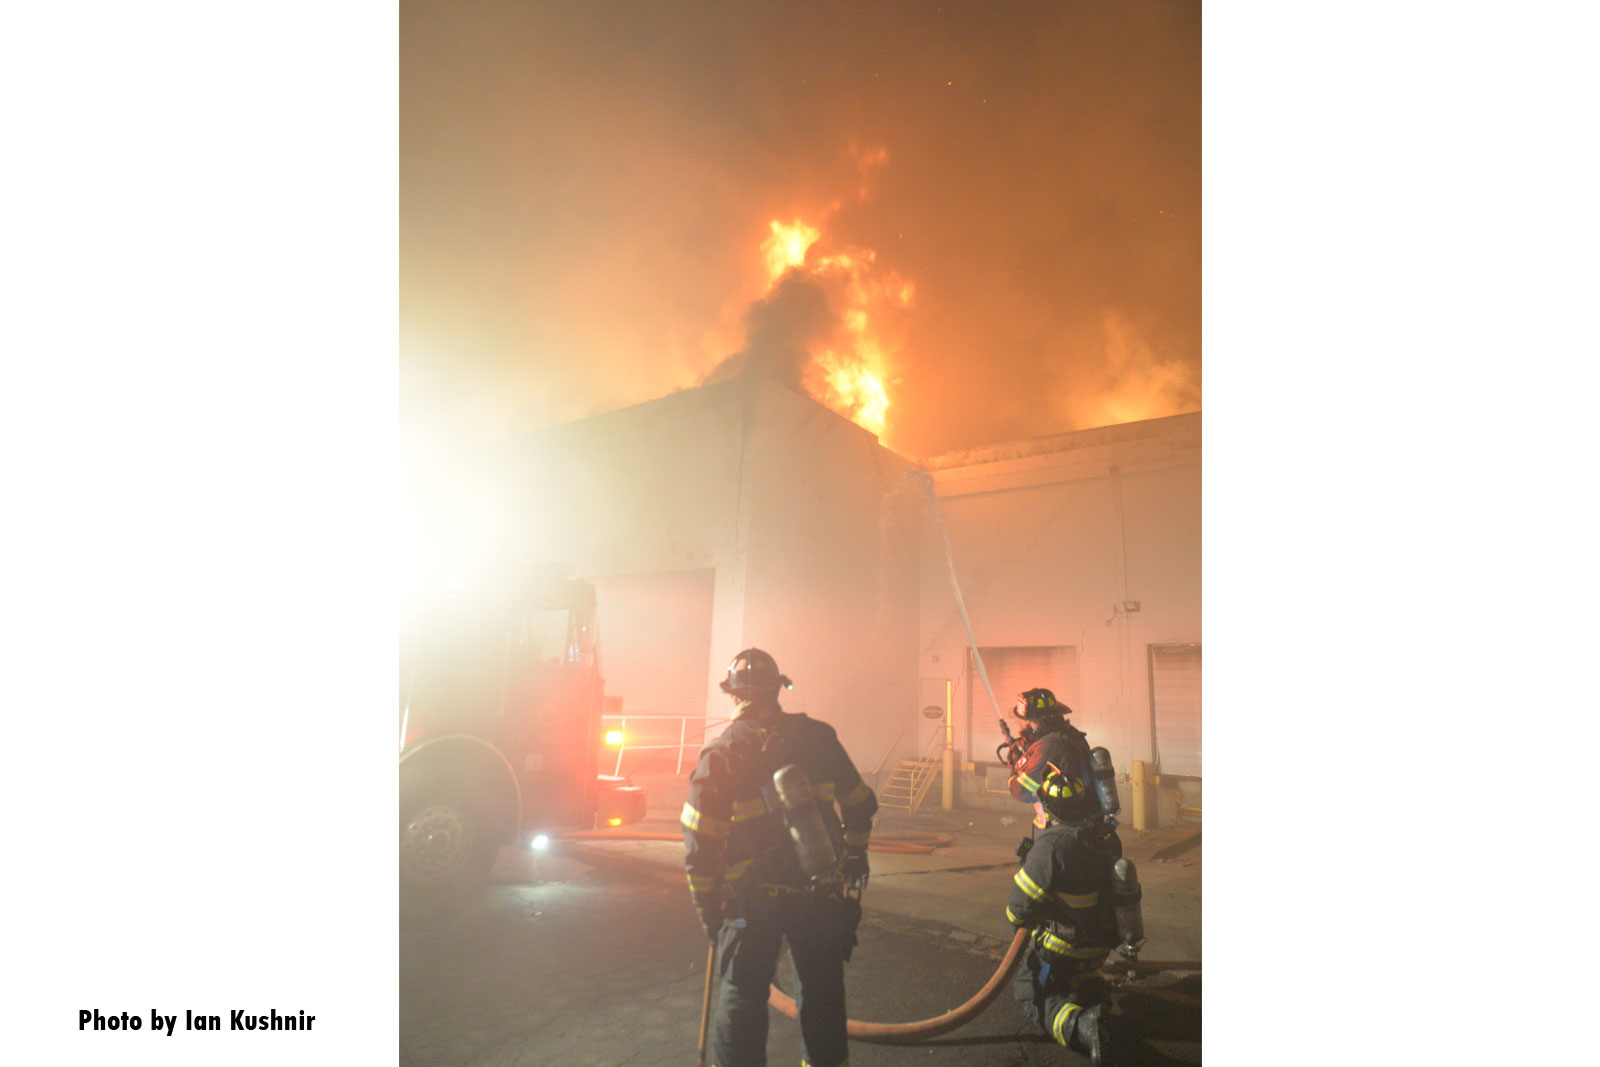 Firefighters working as flames erupt from the building